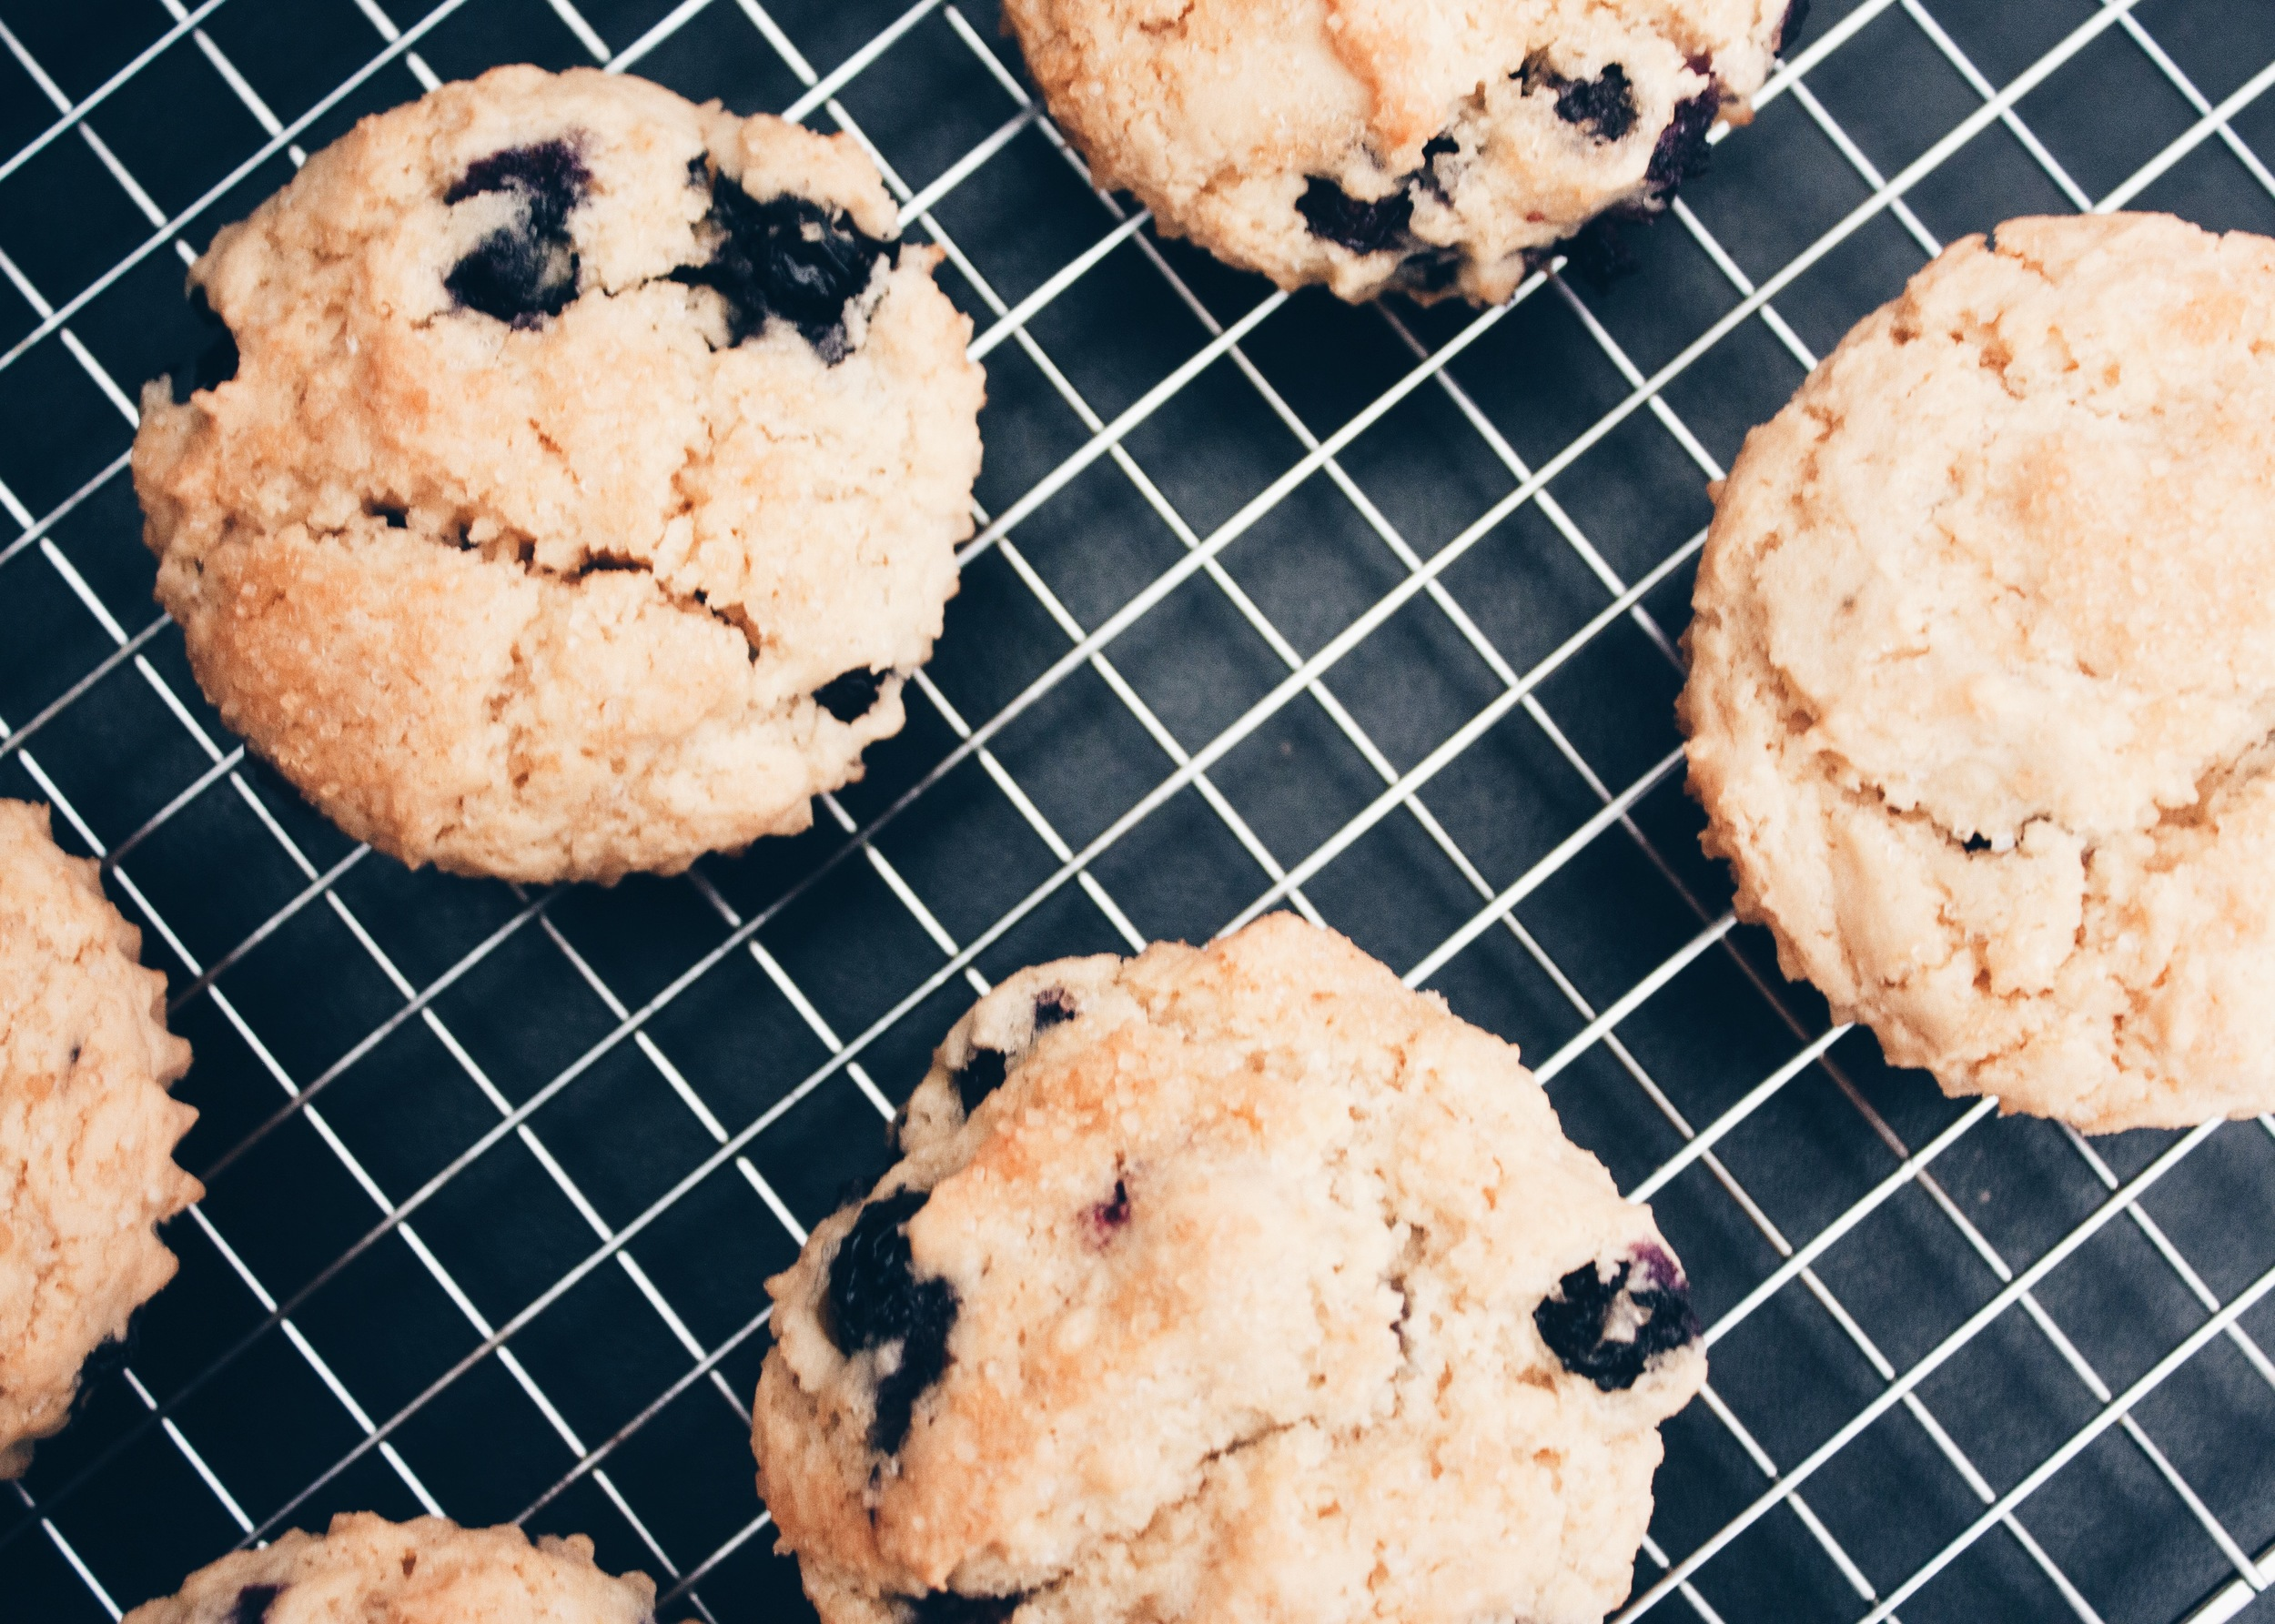 sam-c-perry-Easy-Gluten-Free-Blueberry-Biscuits-3.jpg